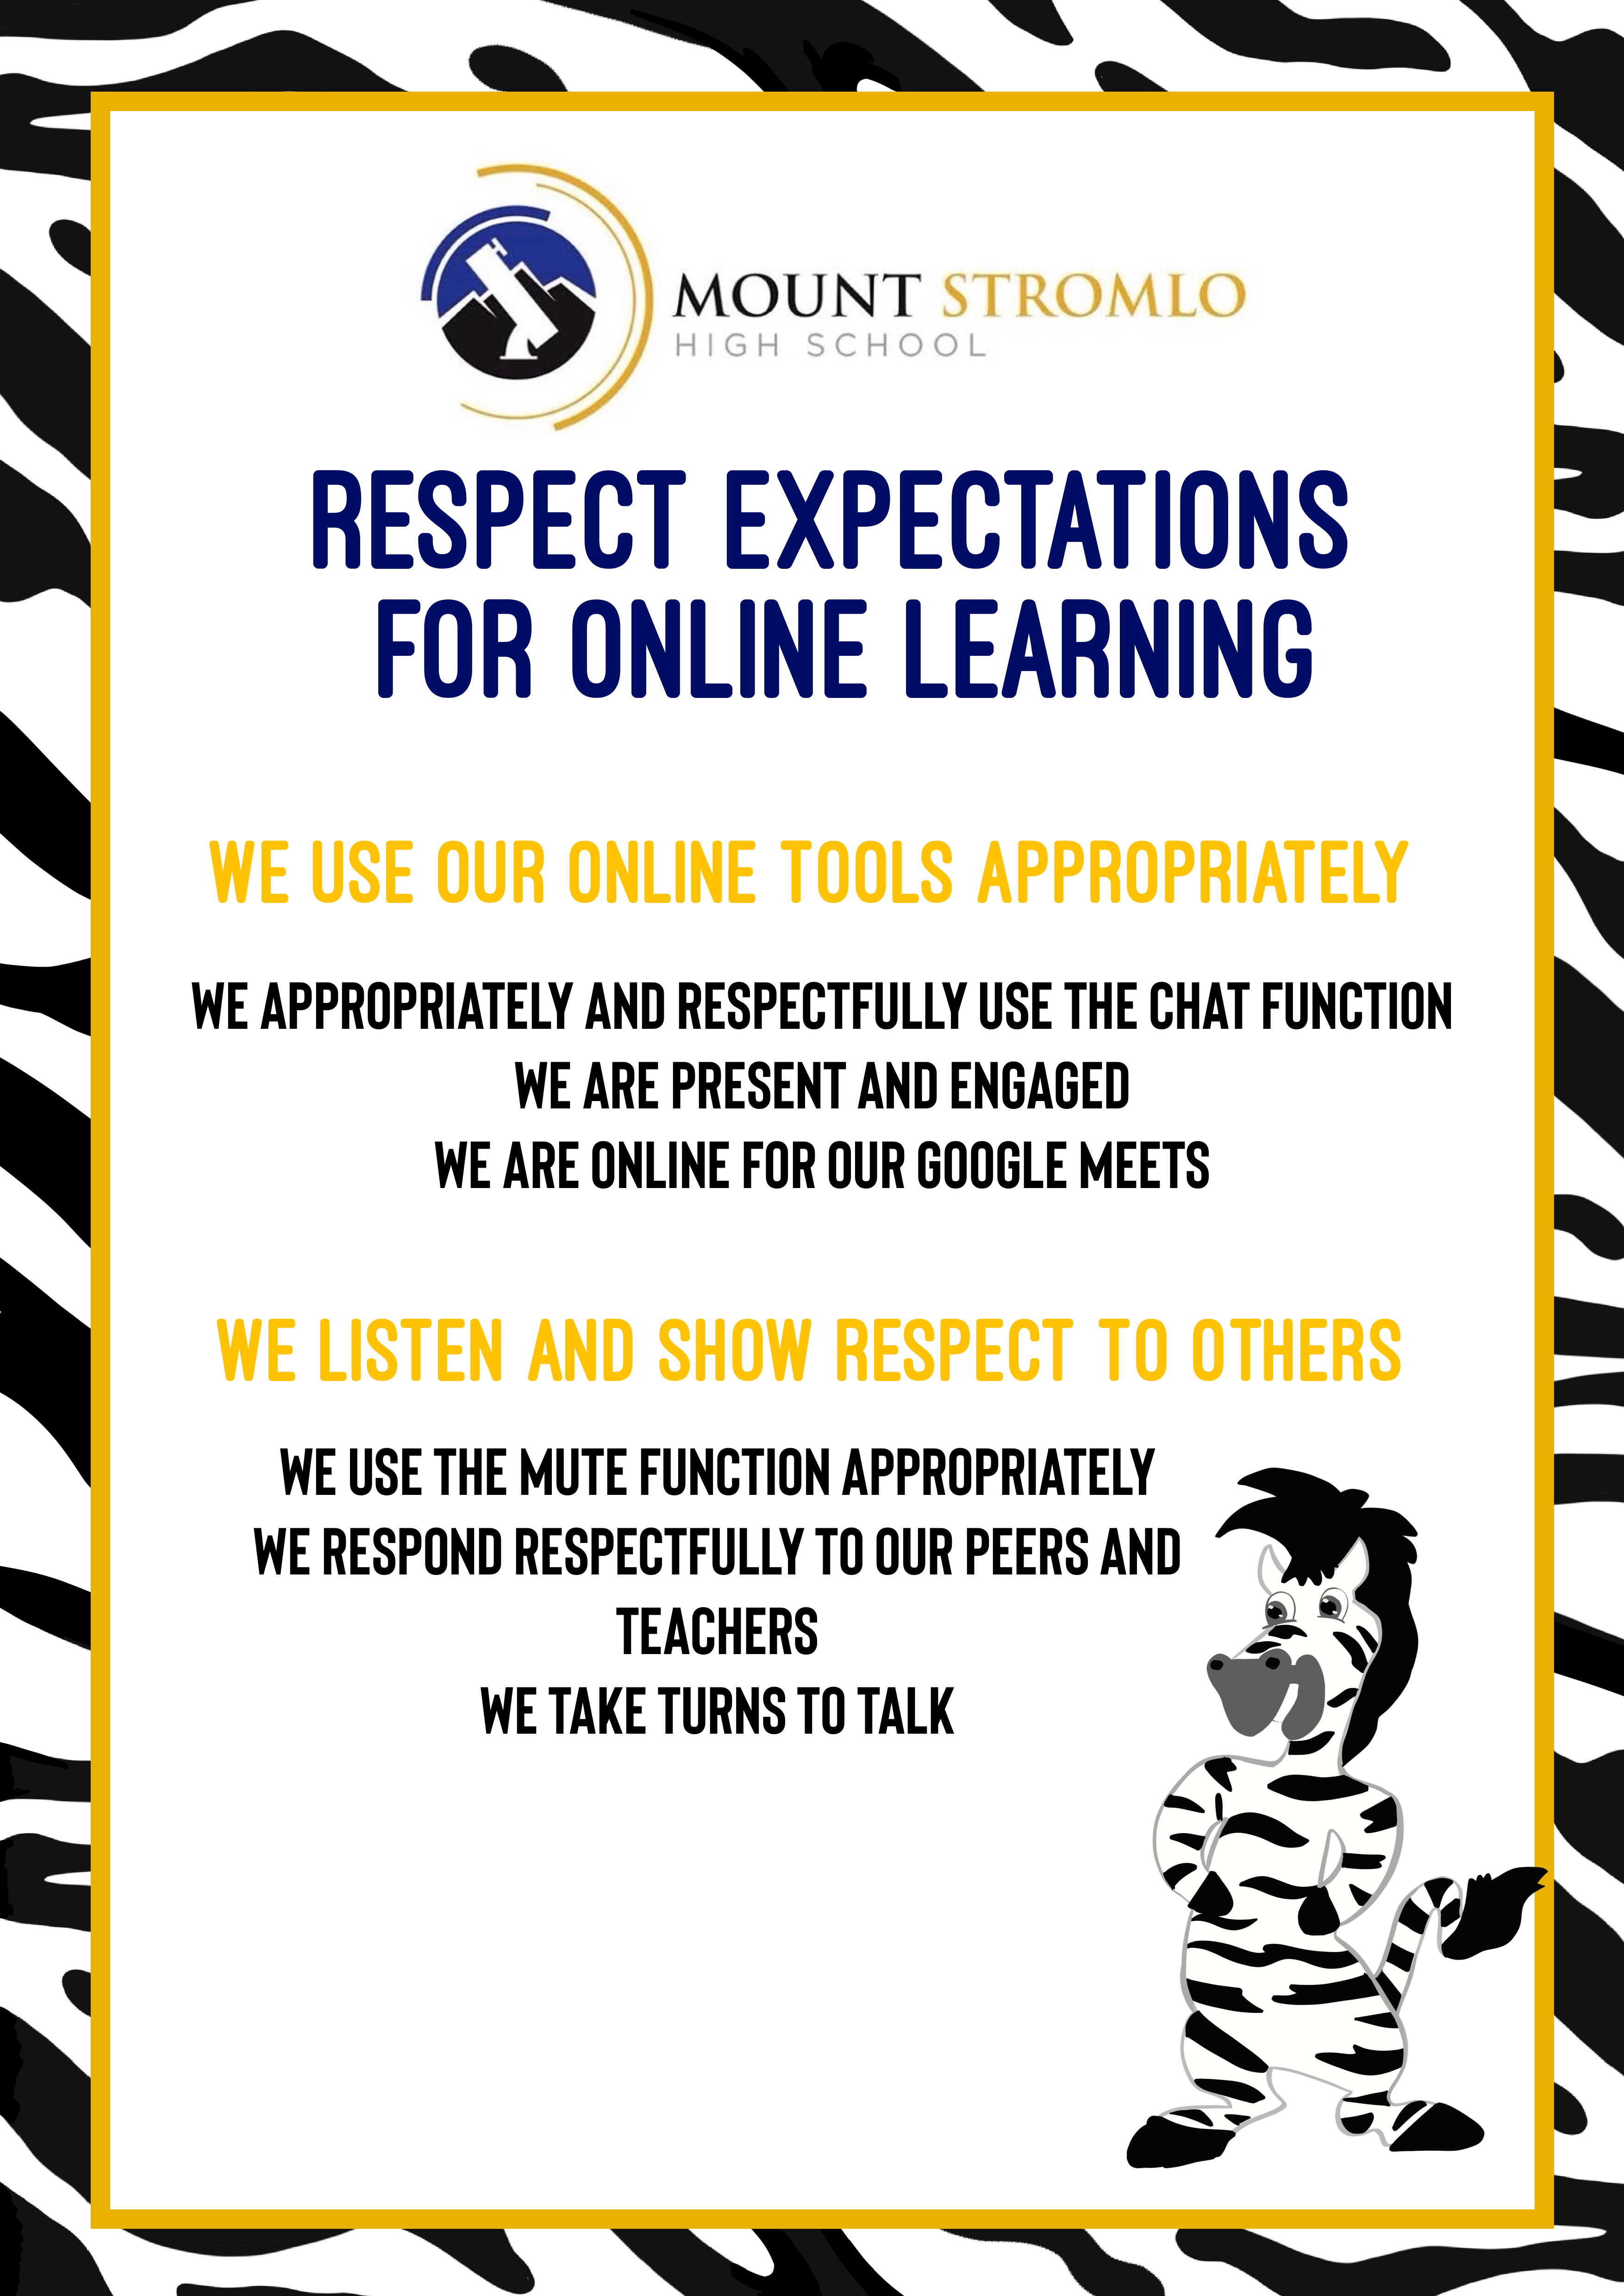 Respect expectations for online learning: We use our online tools appropriately, We listen and show respect to others